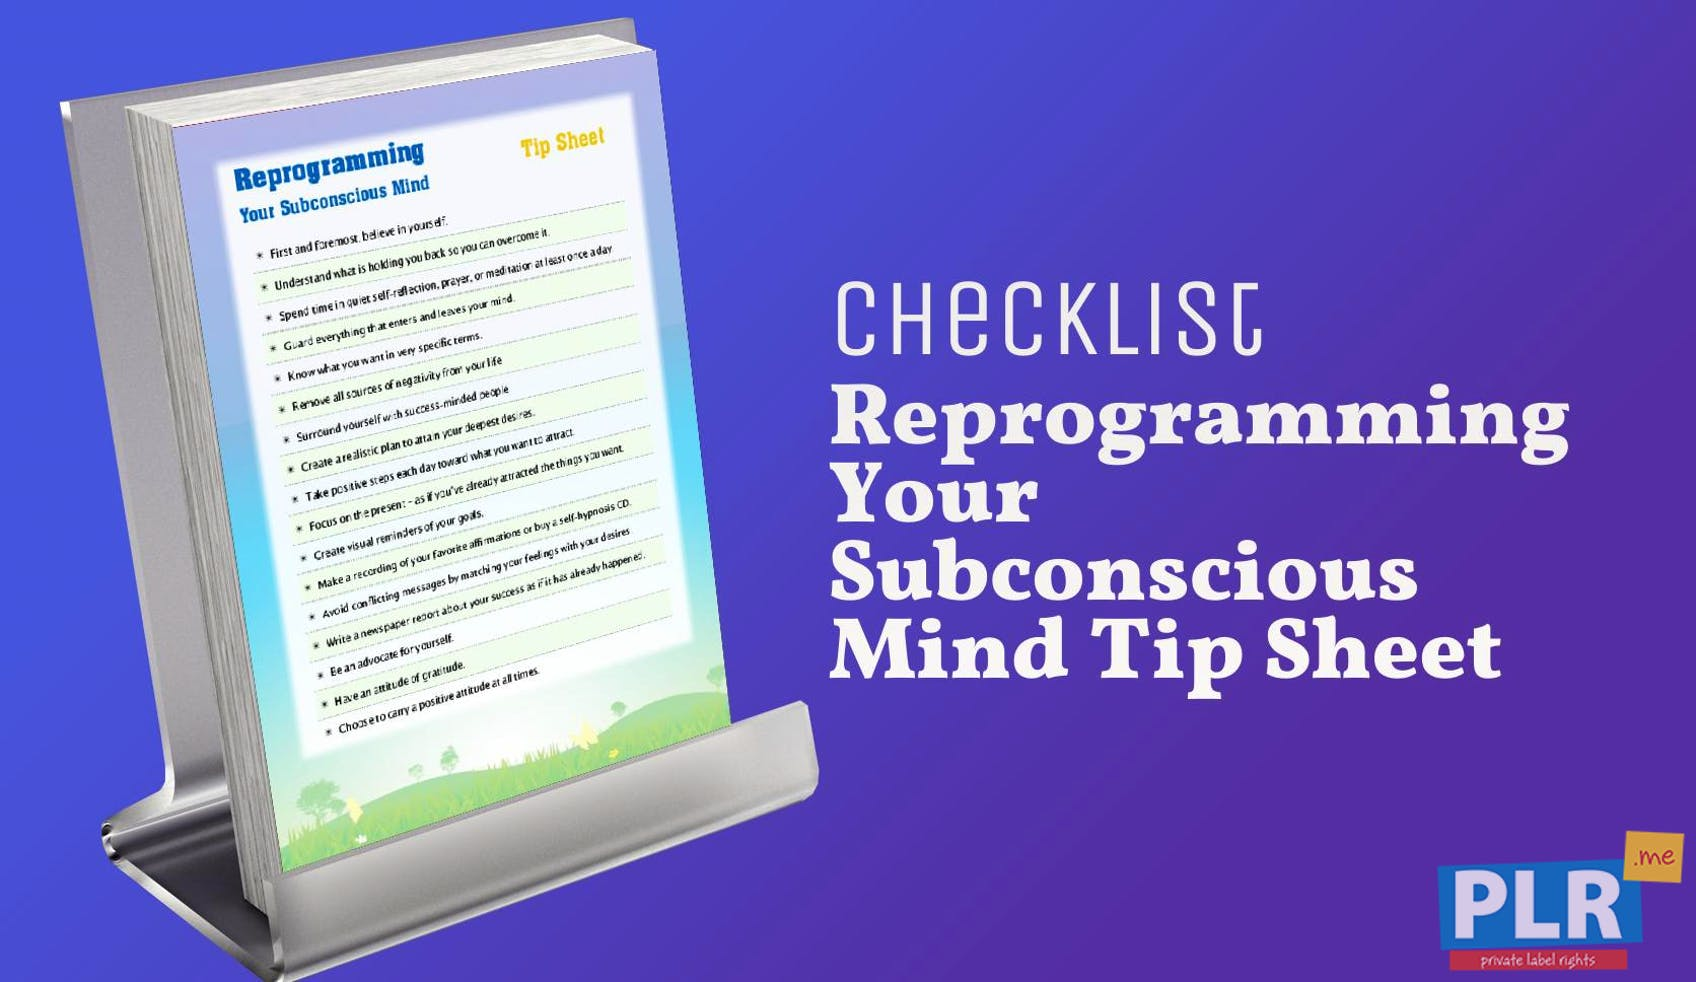 Reprogramming Your Subconscious Mind Tip Sheet